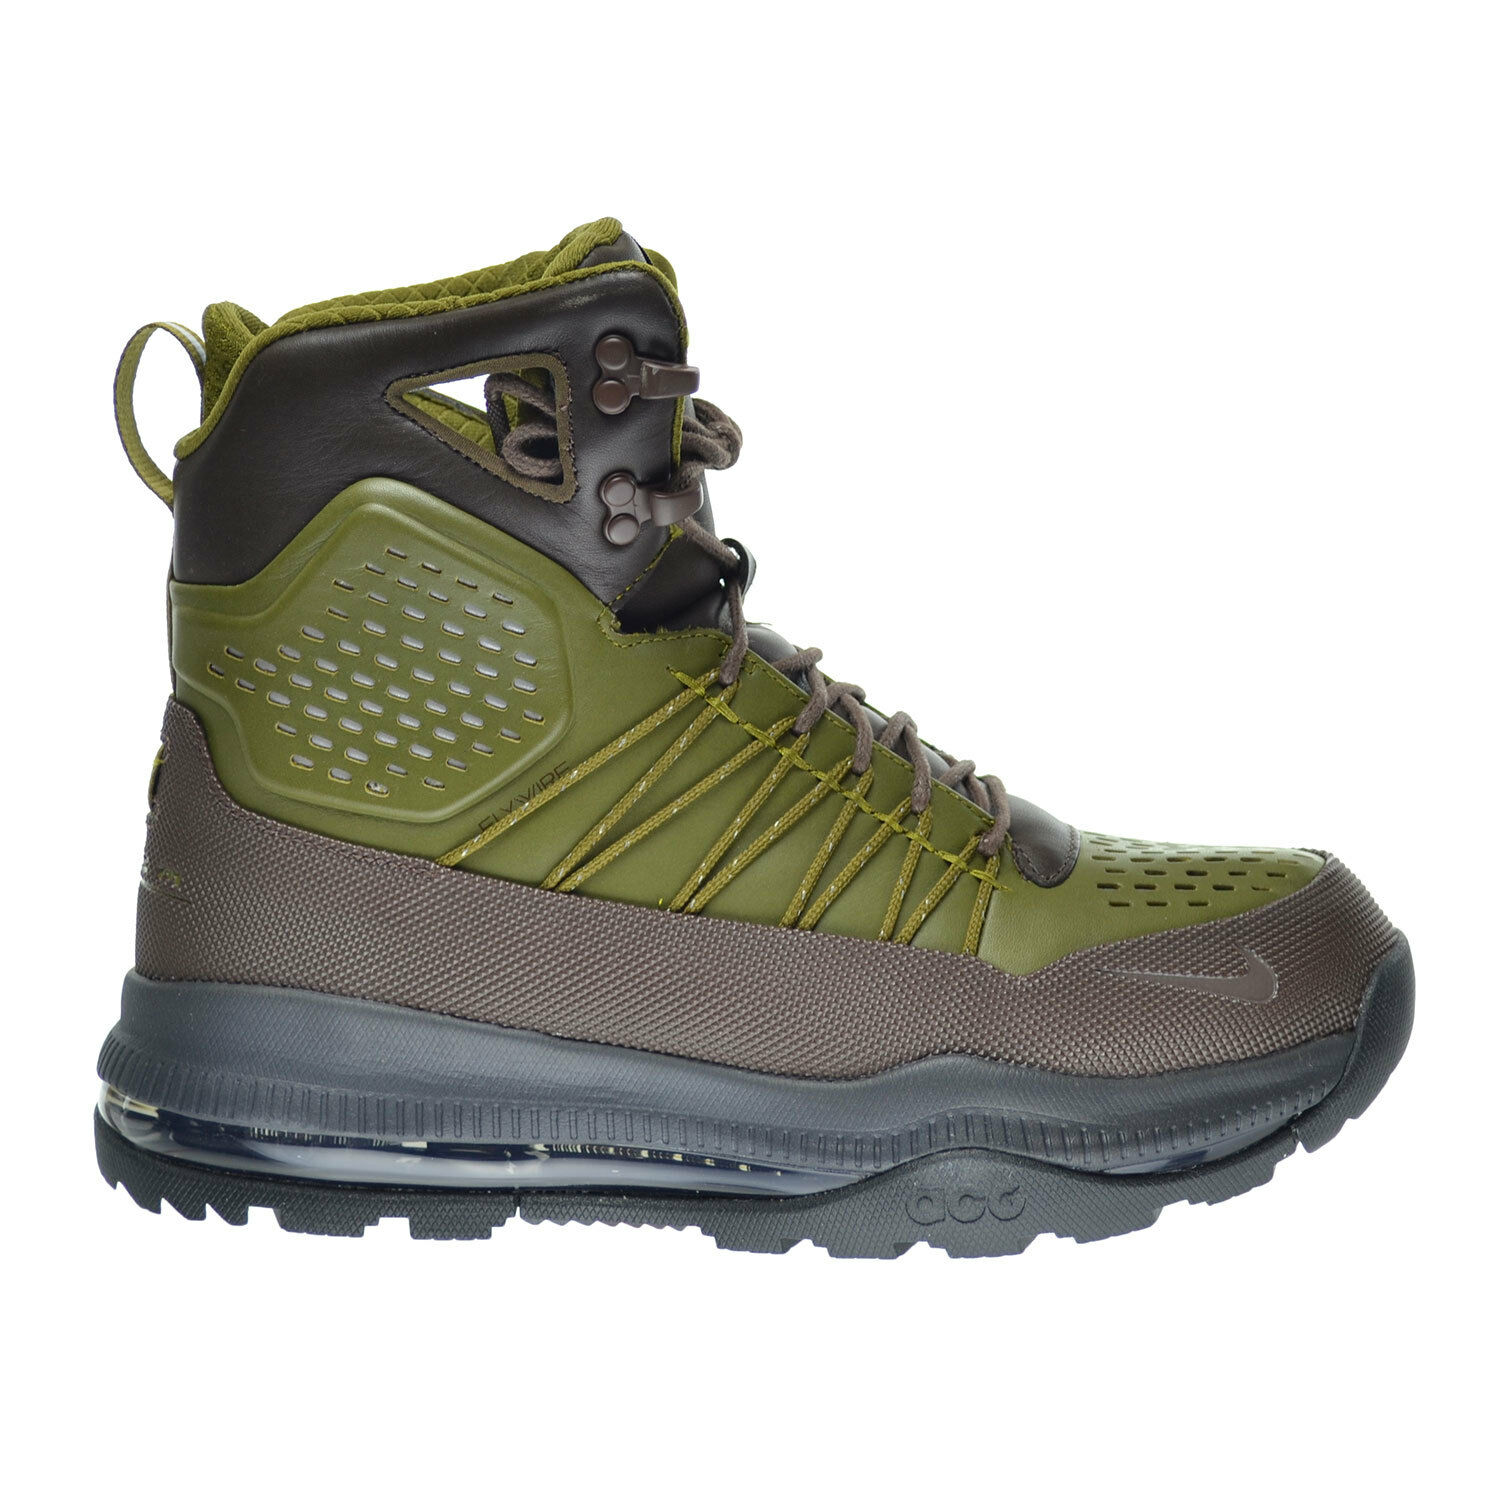 NIB MEN'S NIKE ACG ZOOM SUPERDOME ULTRA COMFORT FLYWIRE WATERPROOF BOOTS Price reduction Cheap women's shoes women's shoes